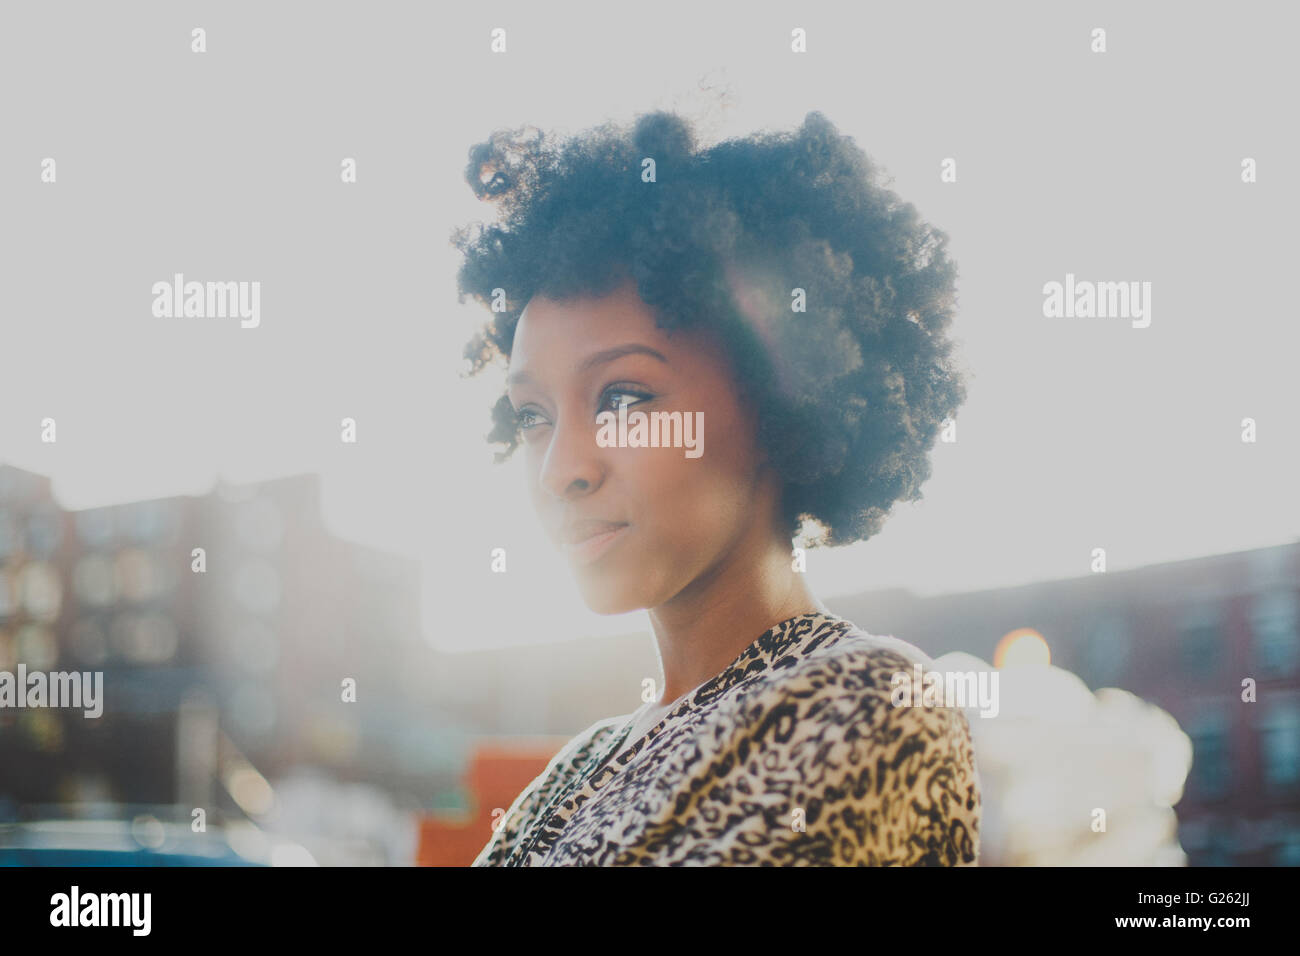 Young woman with afro smiling in urban setting - Stock Image